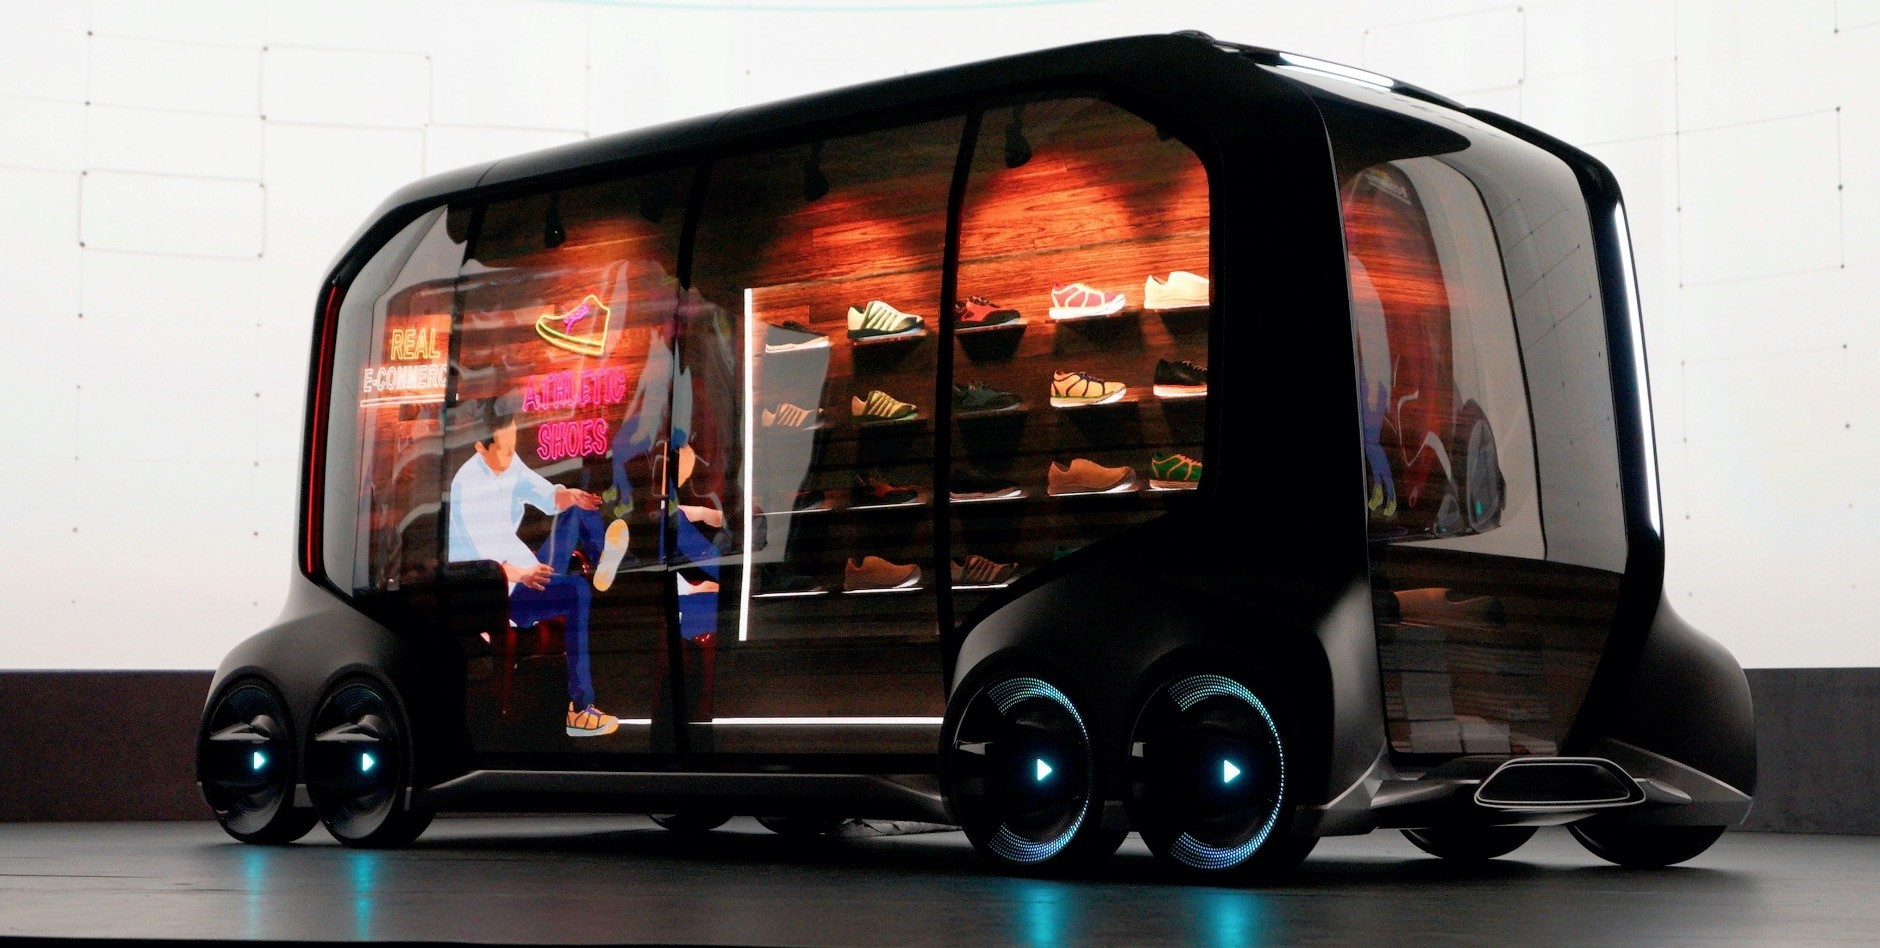 Toyota Motor Corporation displays the u2018e-Paletteu2019, a new, fully self-driving, electric concept vehicle designed to be used for ride hailing, parcel delivery services and other uses at CES in Las Vegas.